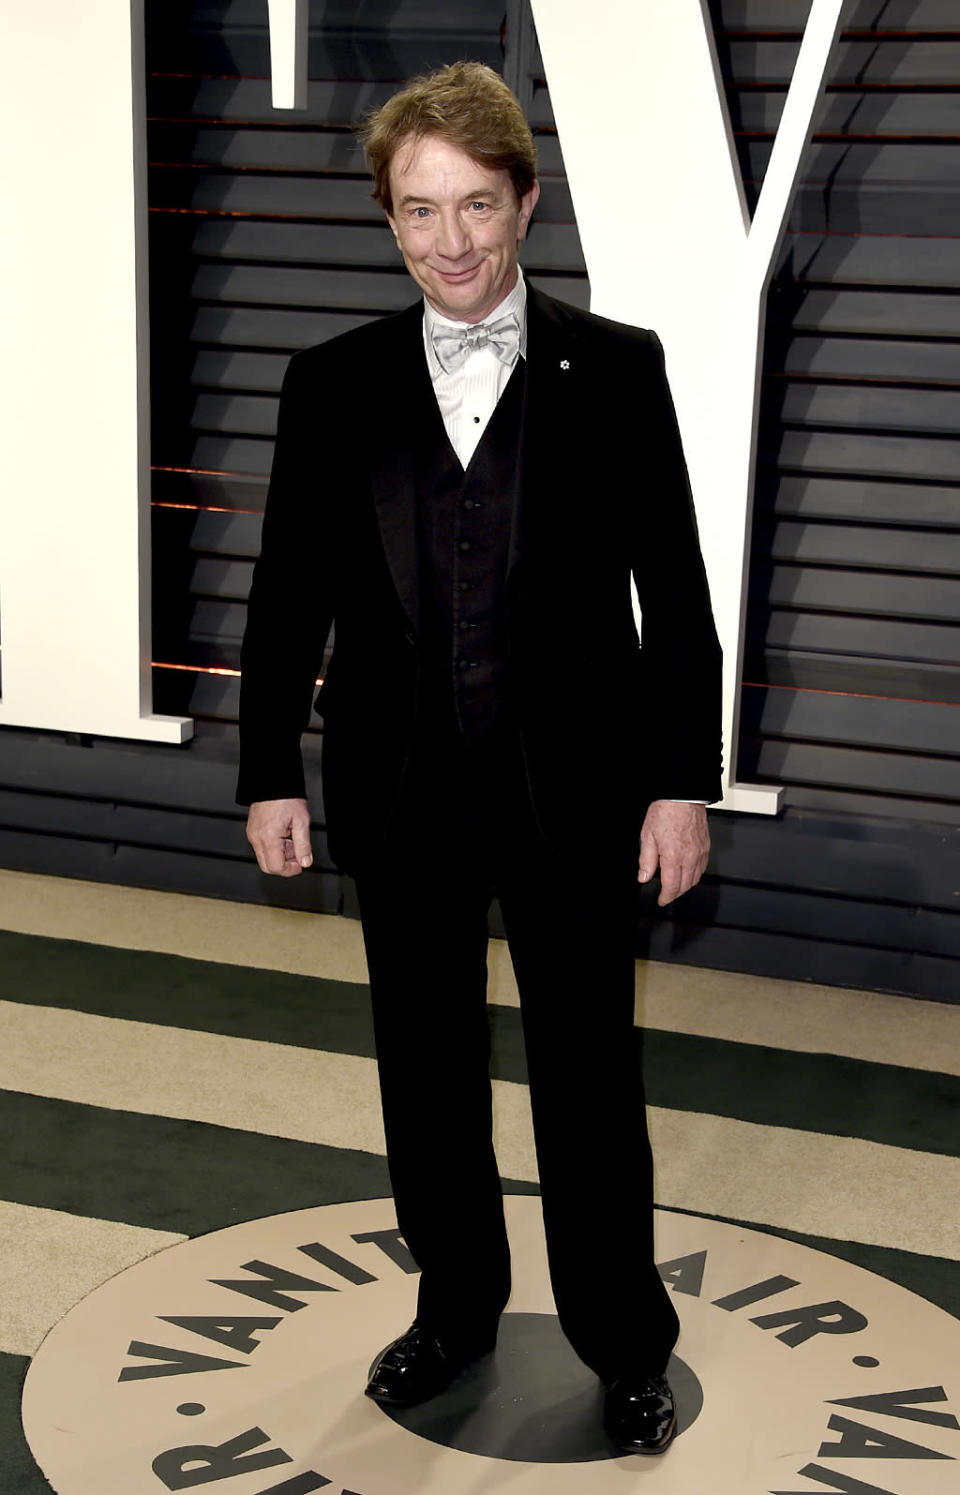 <p>Martin Short arrives at the Vanity Fair Oscar Party on Sunday, Feb. 26, 2017, in Beverly Hills, Calif. (Photo by Evan Agostini/Invision/AP) </p>